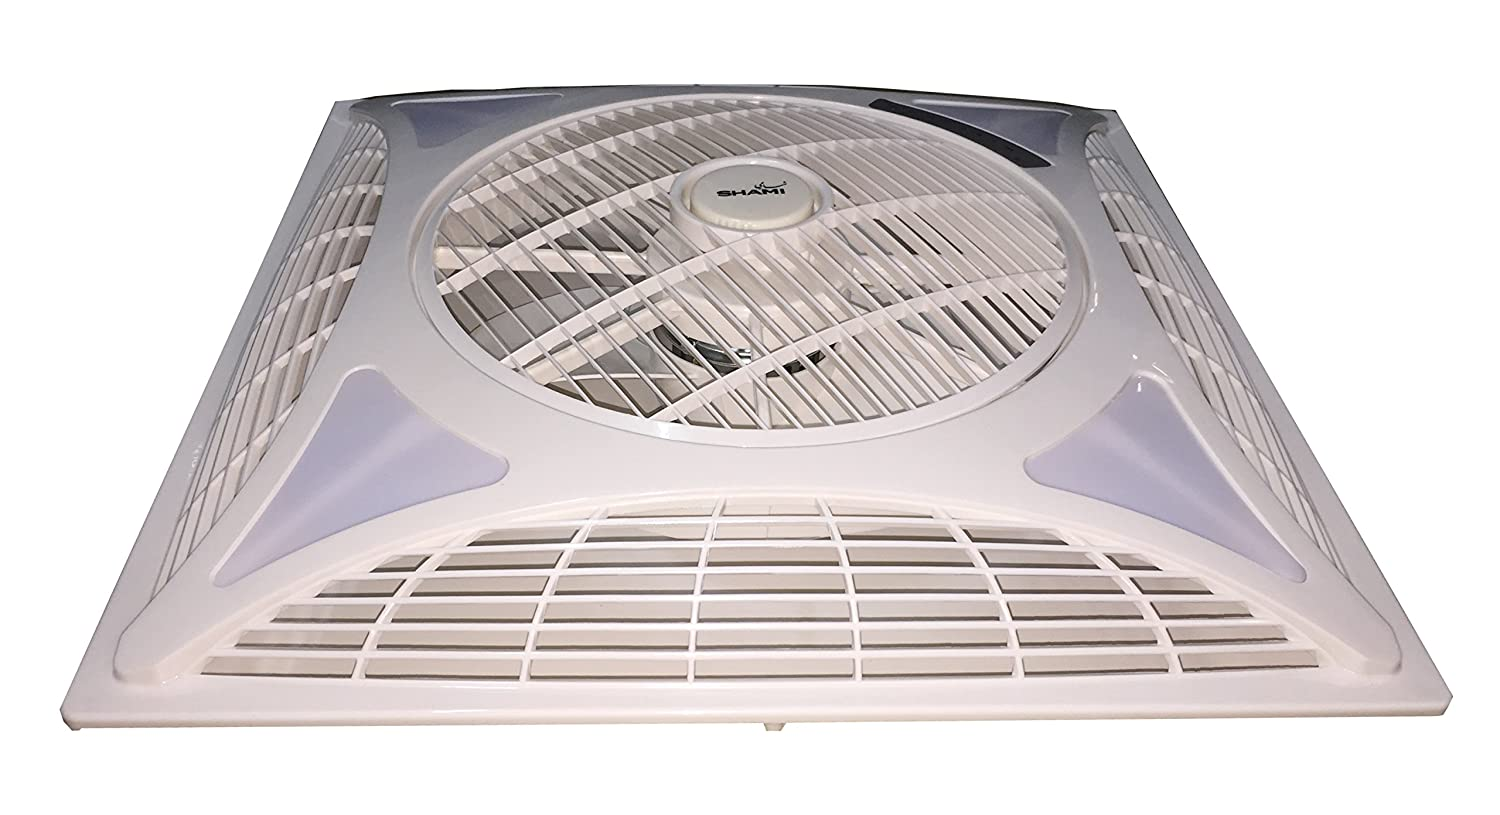 Premium Recessed False Ceiling Cassette Fan With Led At Low S In India